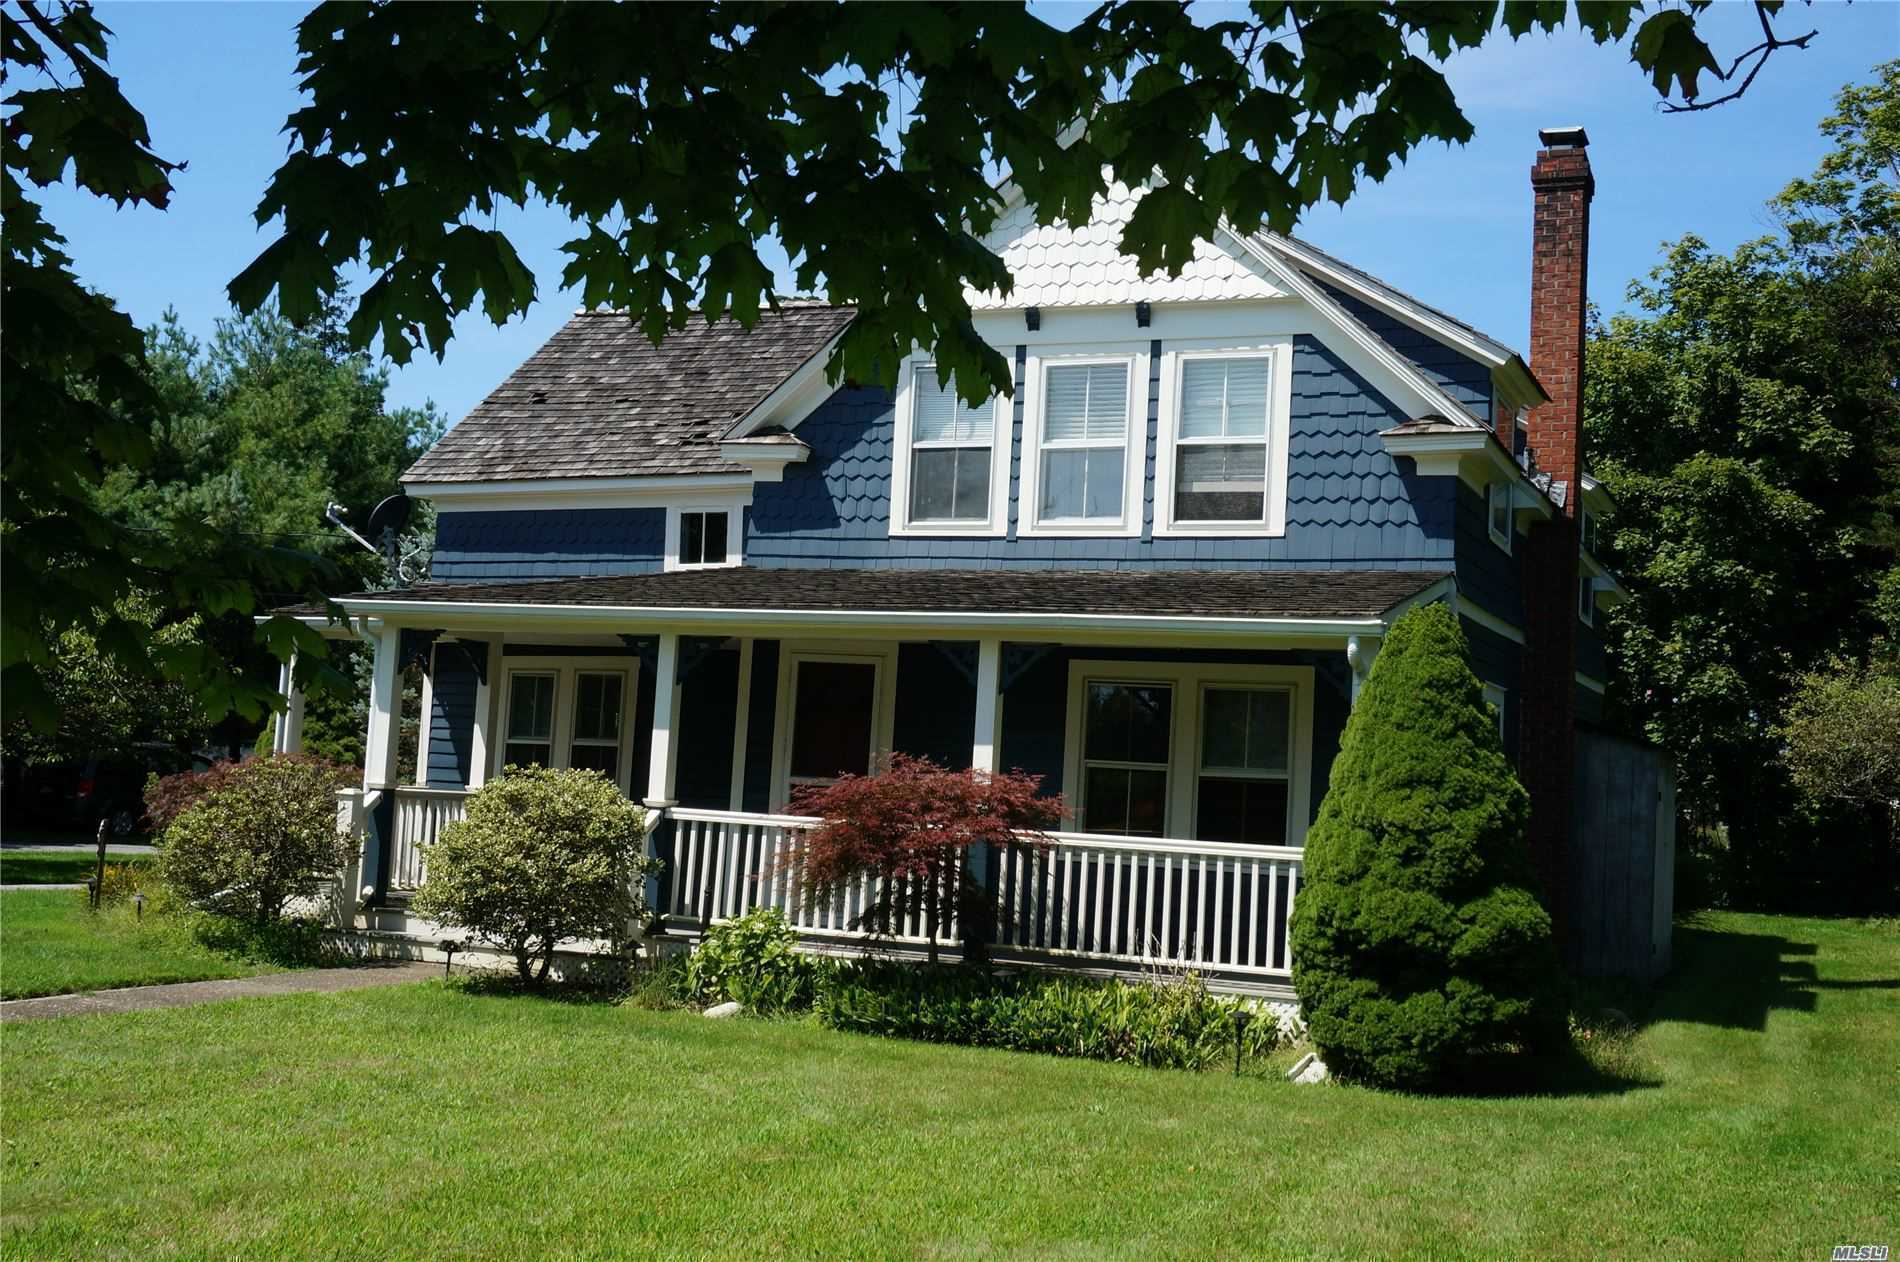 Quaint Victorian Home With Many Updates (Newer Cedar Roof /Pool Liner) Steps To Village And Bus Transportation From Nyc Freshly Painted Wood Burning Fireplace In Living Room With Built Ins Hardwood Floors Large Yard With Park Like Grounds And Heated Pool Separate Building Used As Studio/Office With Endless Possibilities Call To See Today!